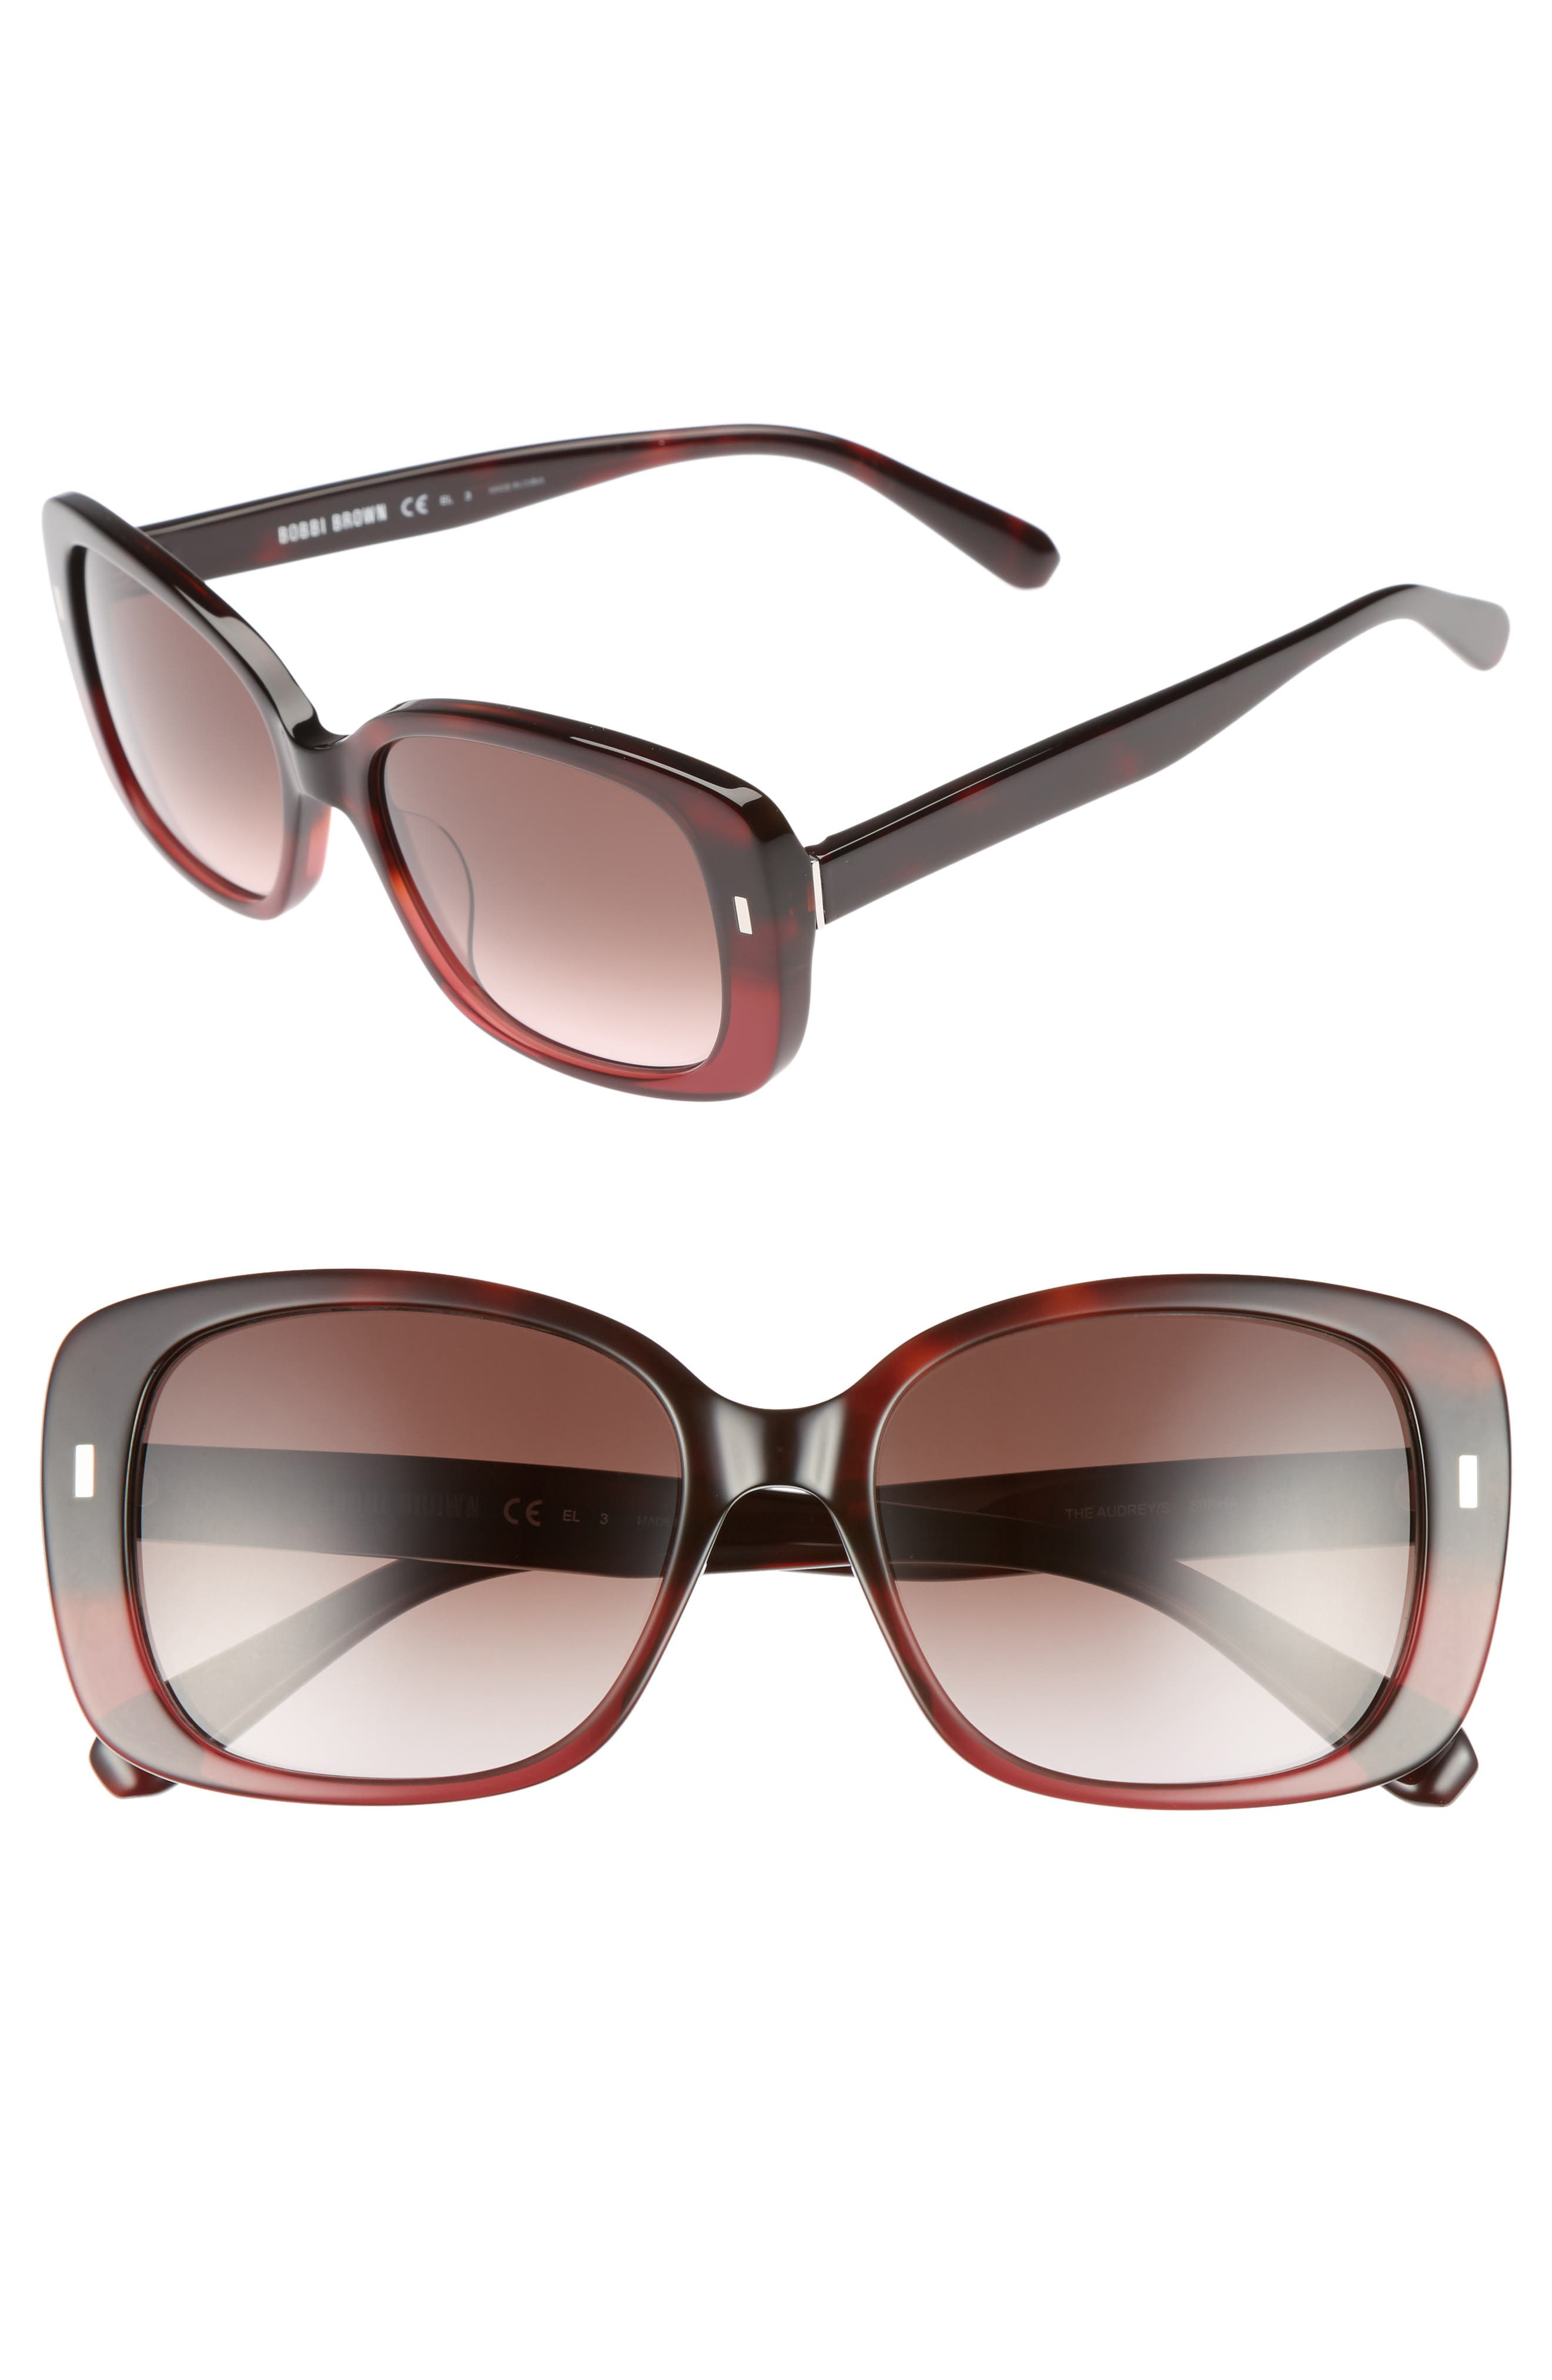 Bobbi Brown The Audrey 53mm Square Sunglasses